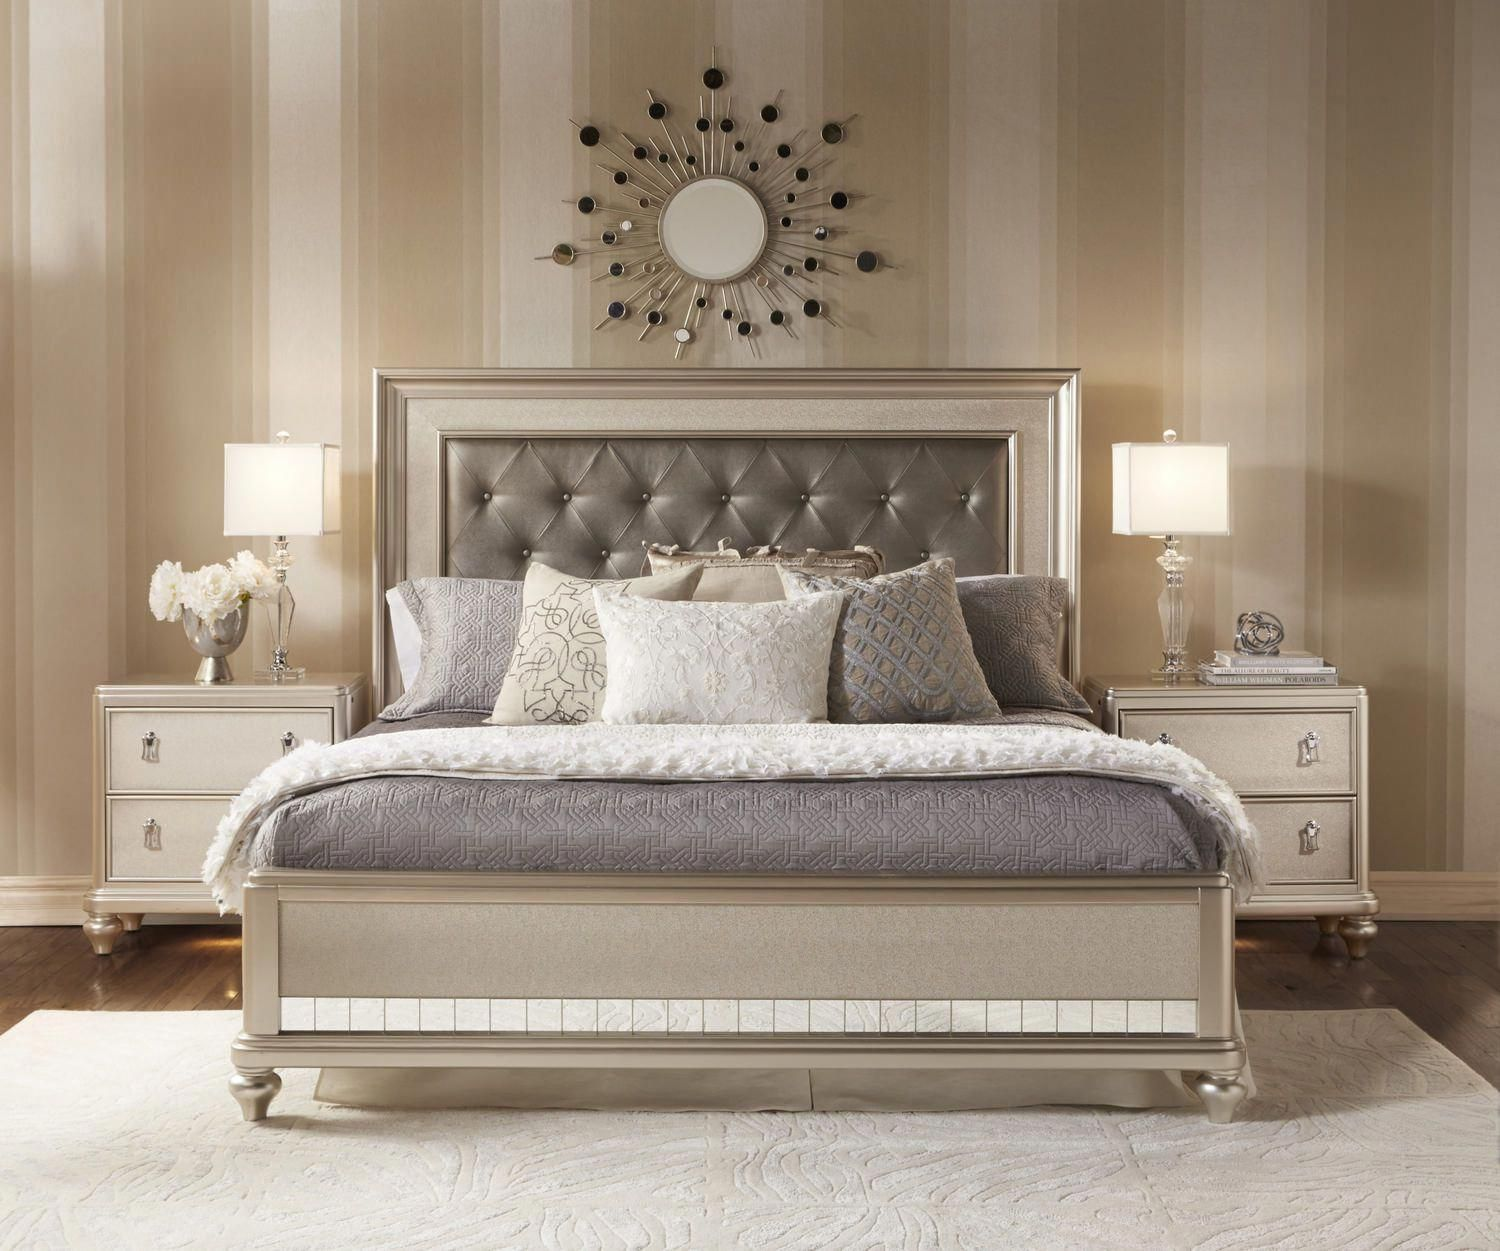 luxueuse Chambre Pi design Ideas ctures